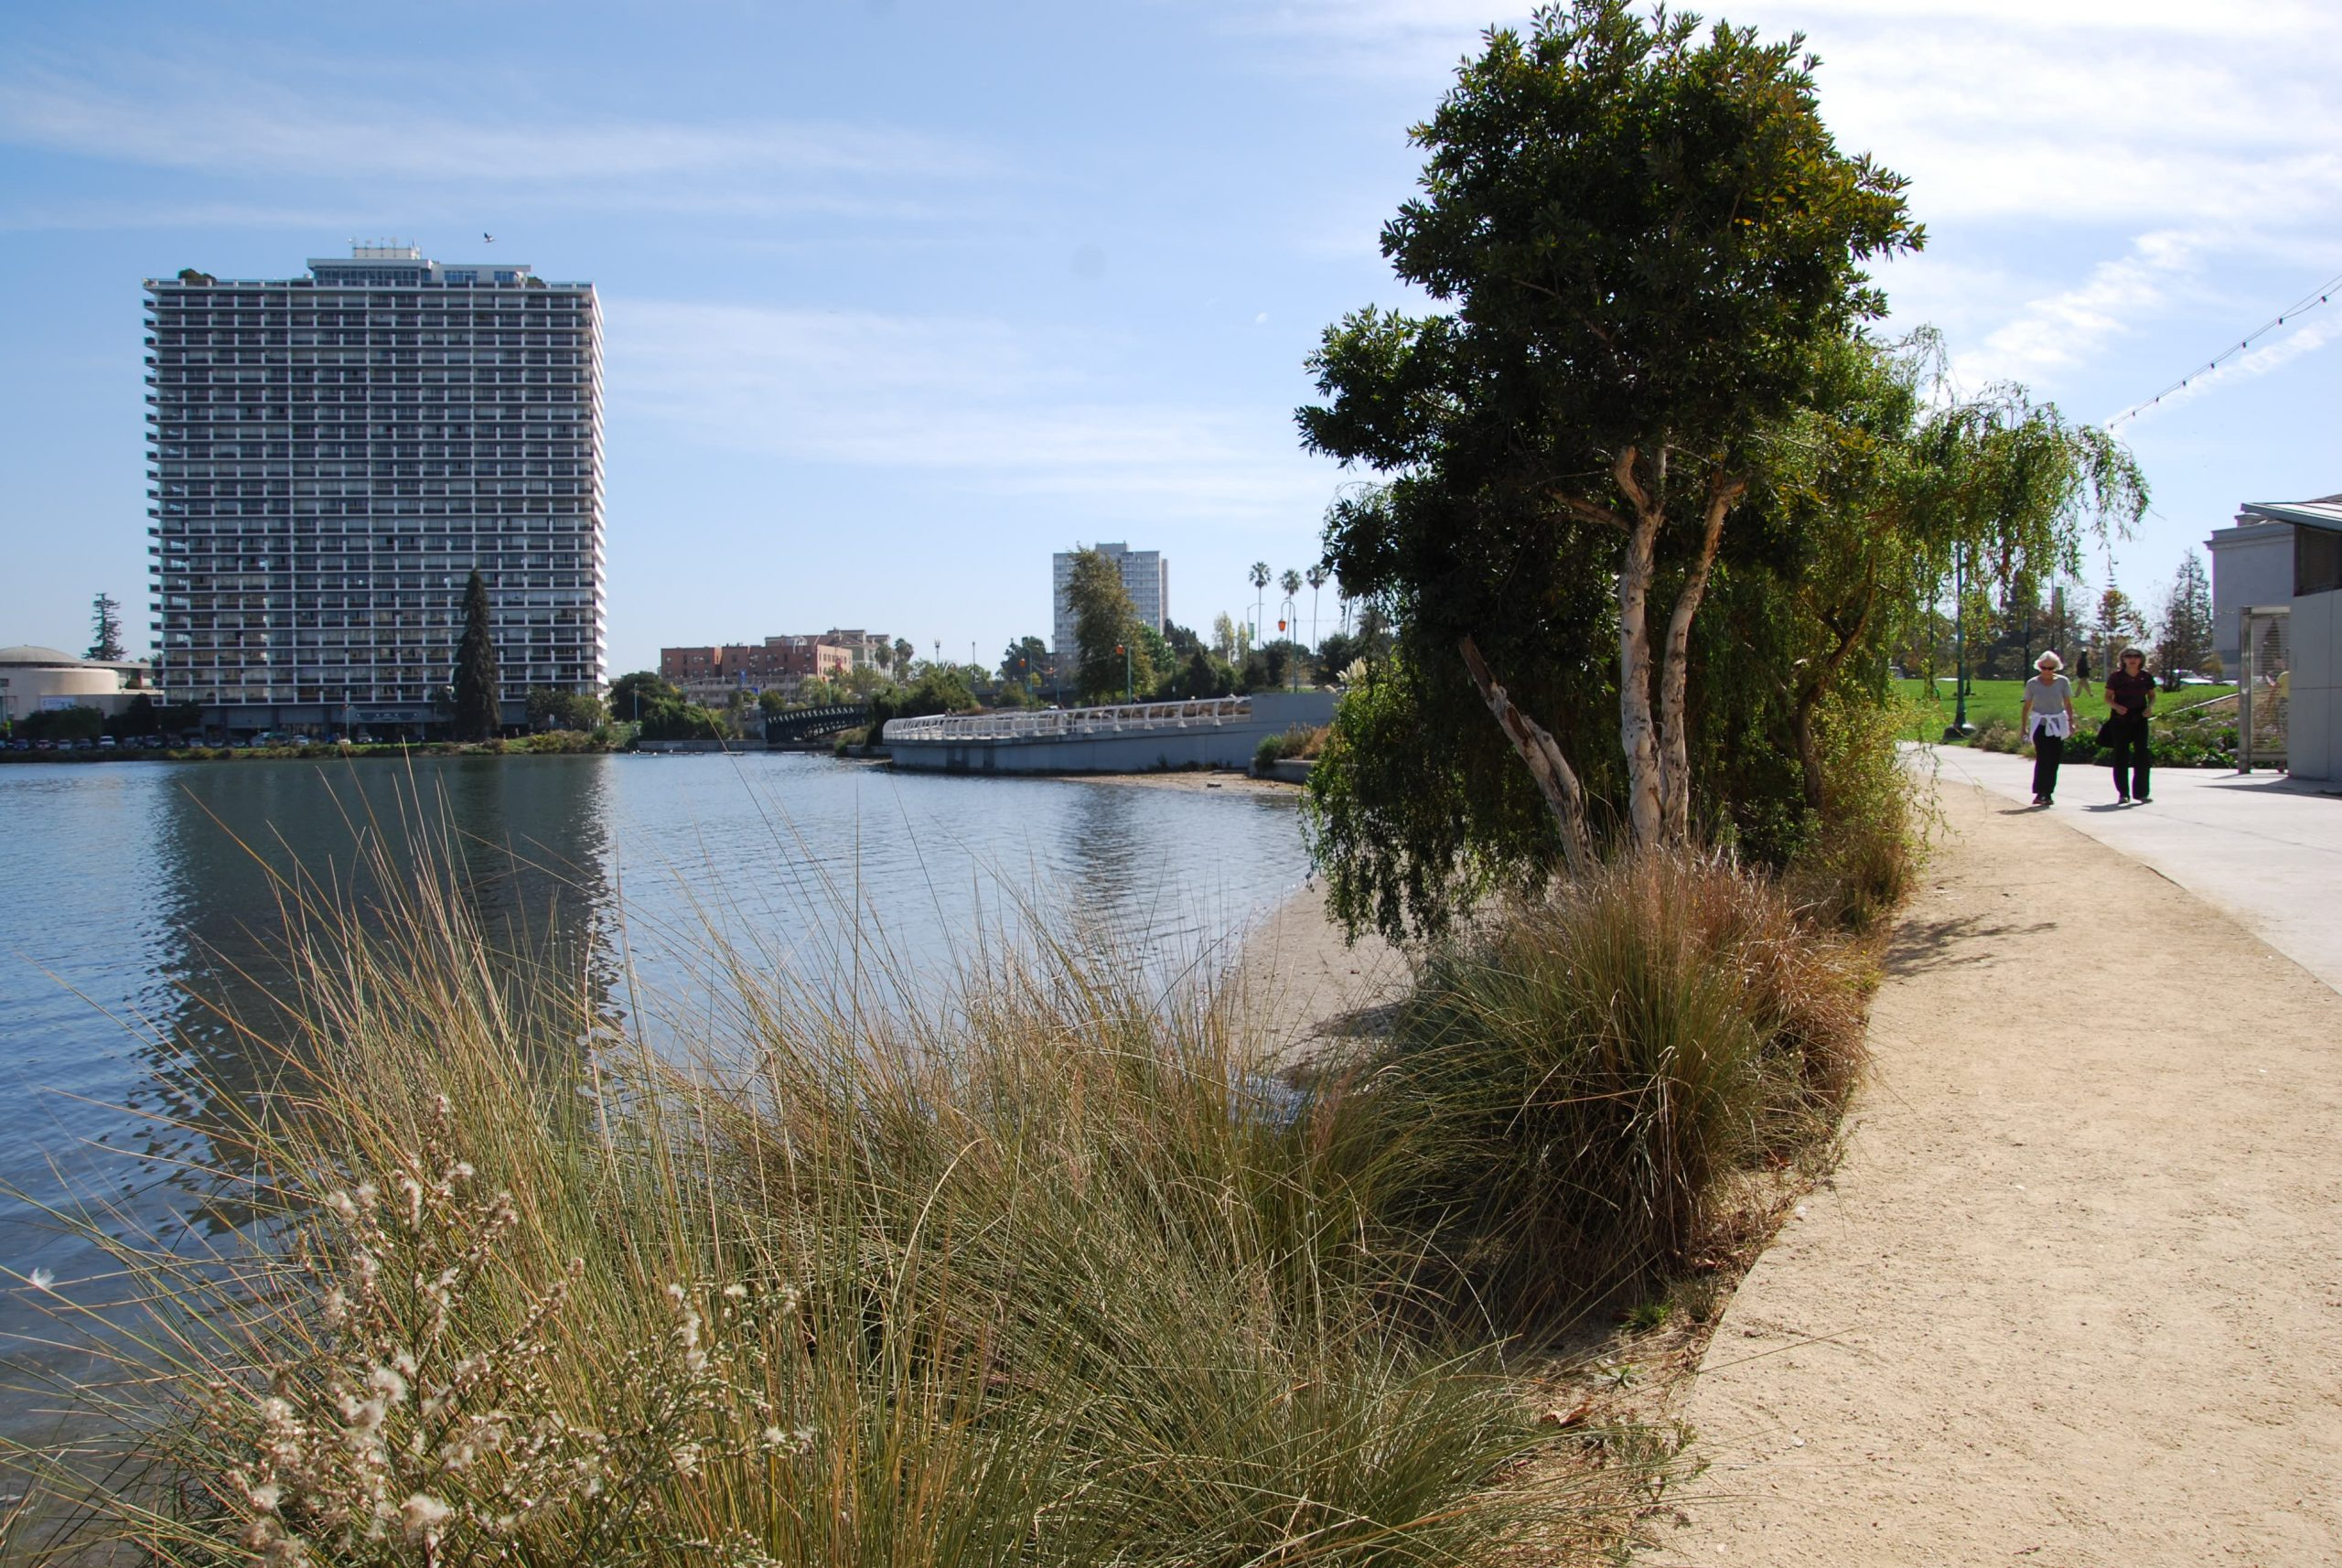 New pedestrian walkways on the south end of Lake Merritt have made it much more inviting. Photo by Scott Morris.